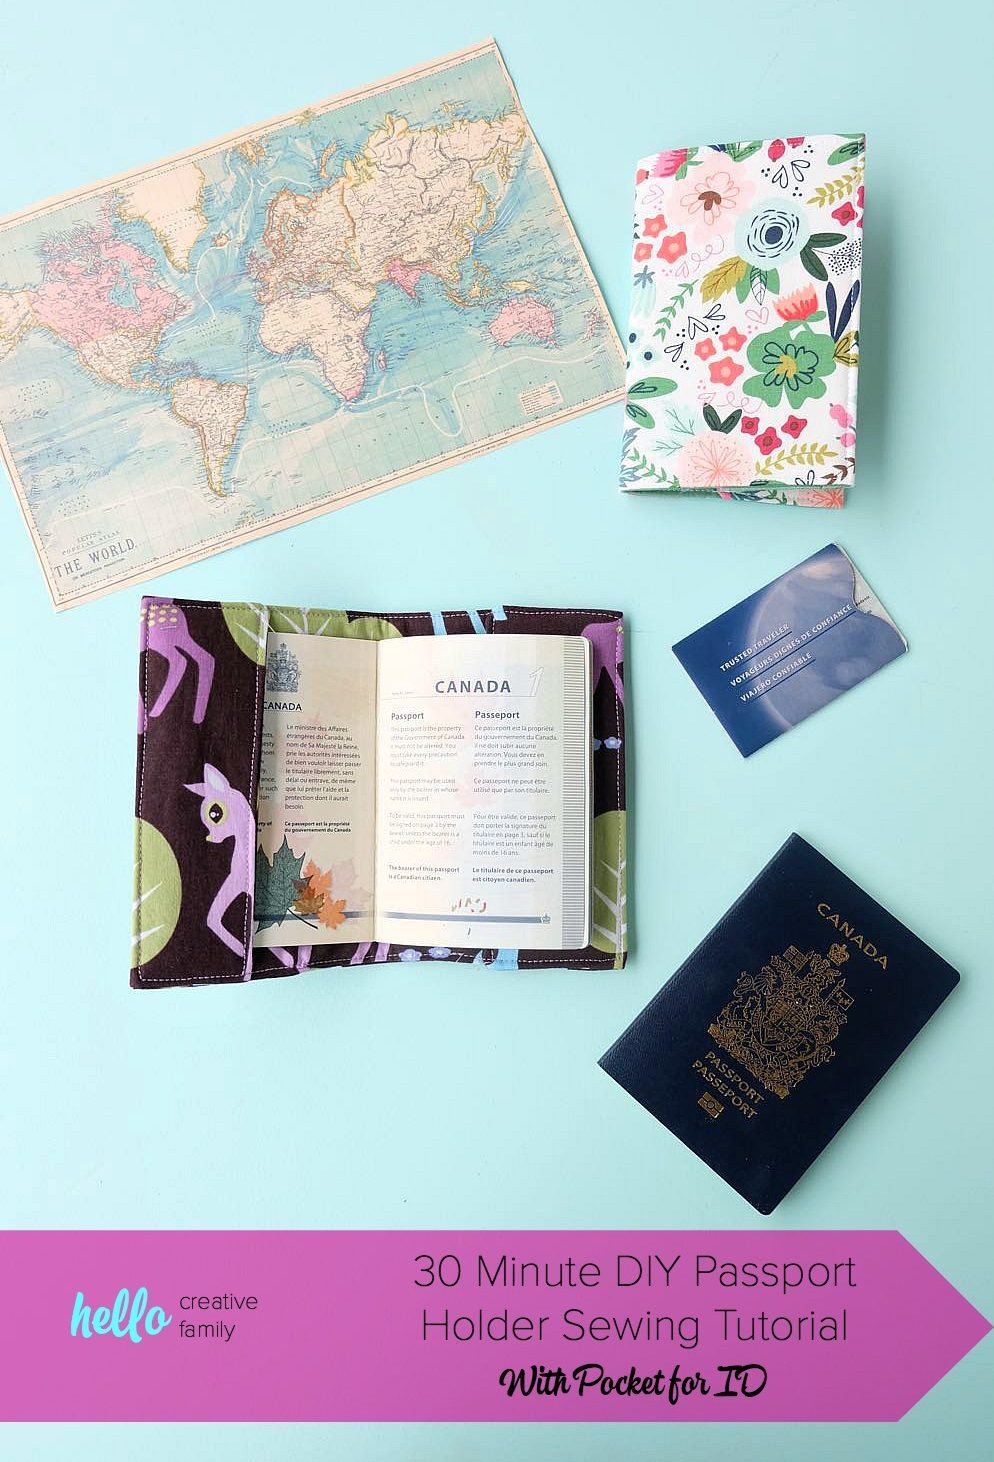 50 Easy Handmade Gift Ideas You'll Love: 30 Minute DIY Passport Holder